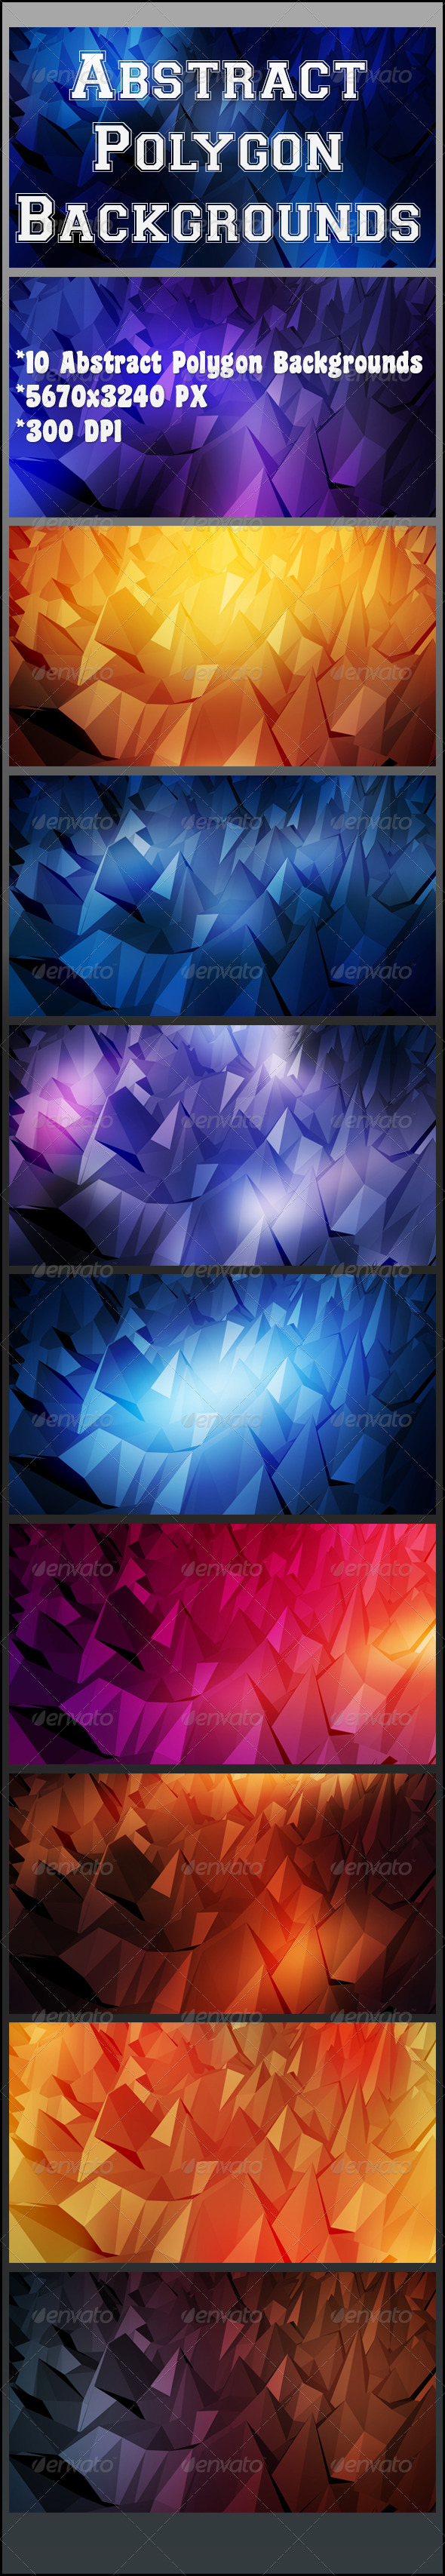 GraphicRiver Abstract Polygon Backgrounds 8257089